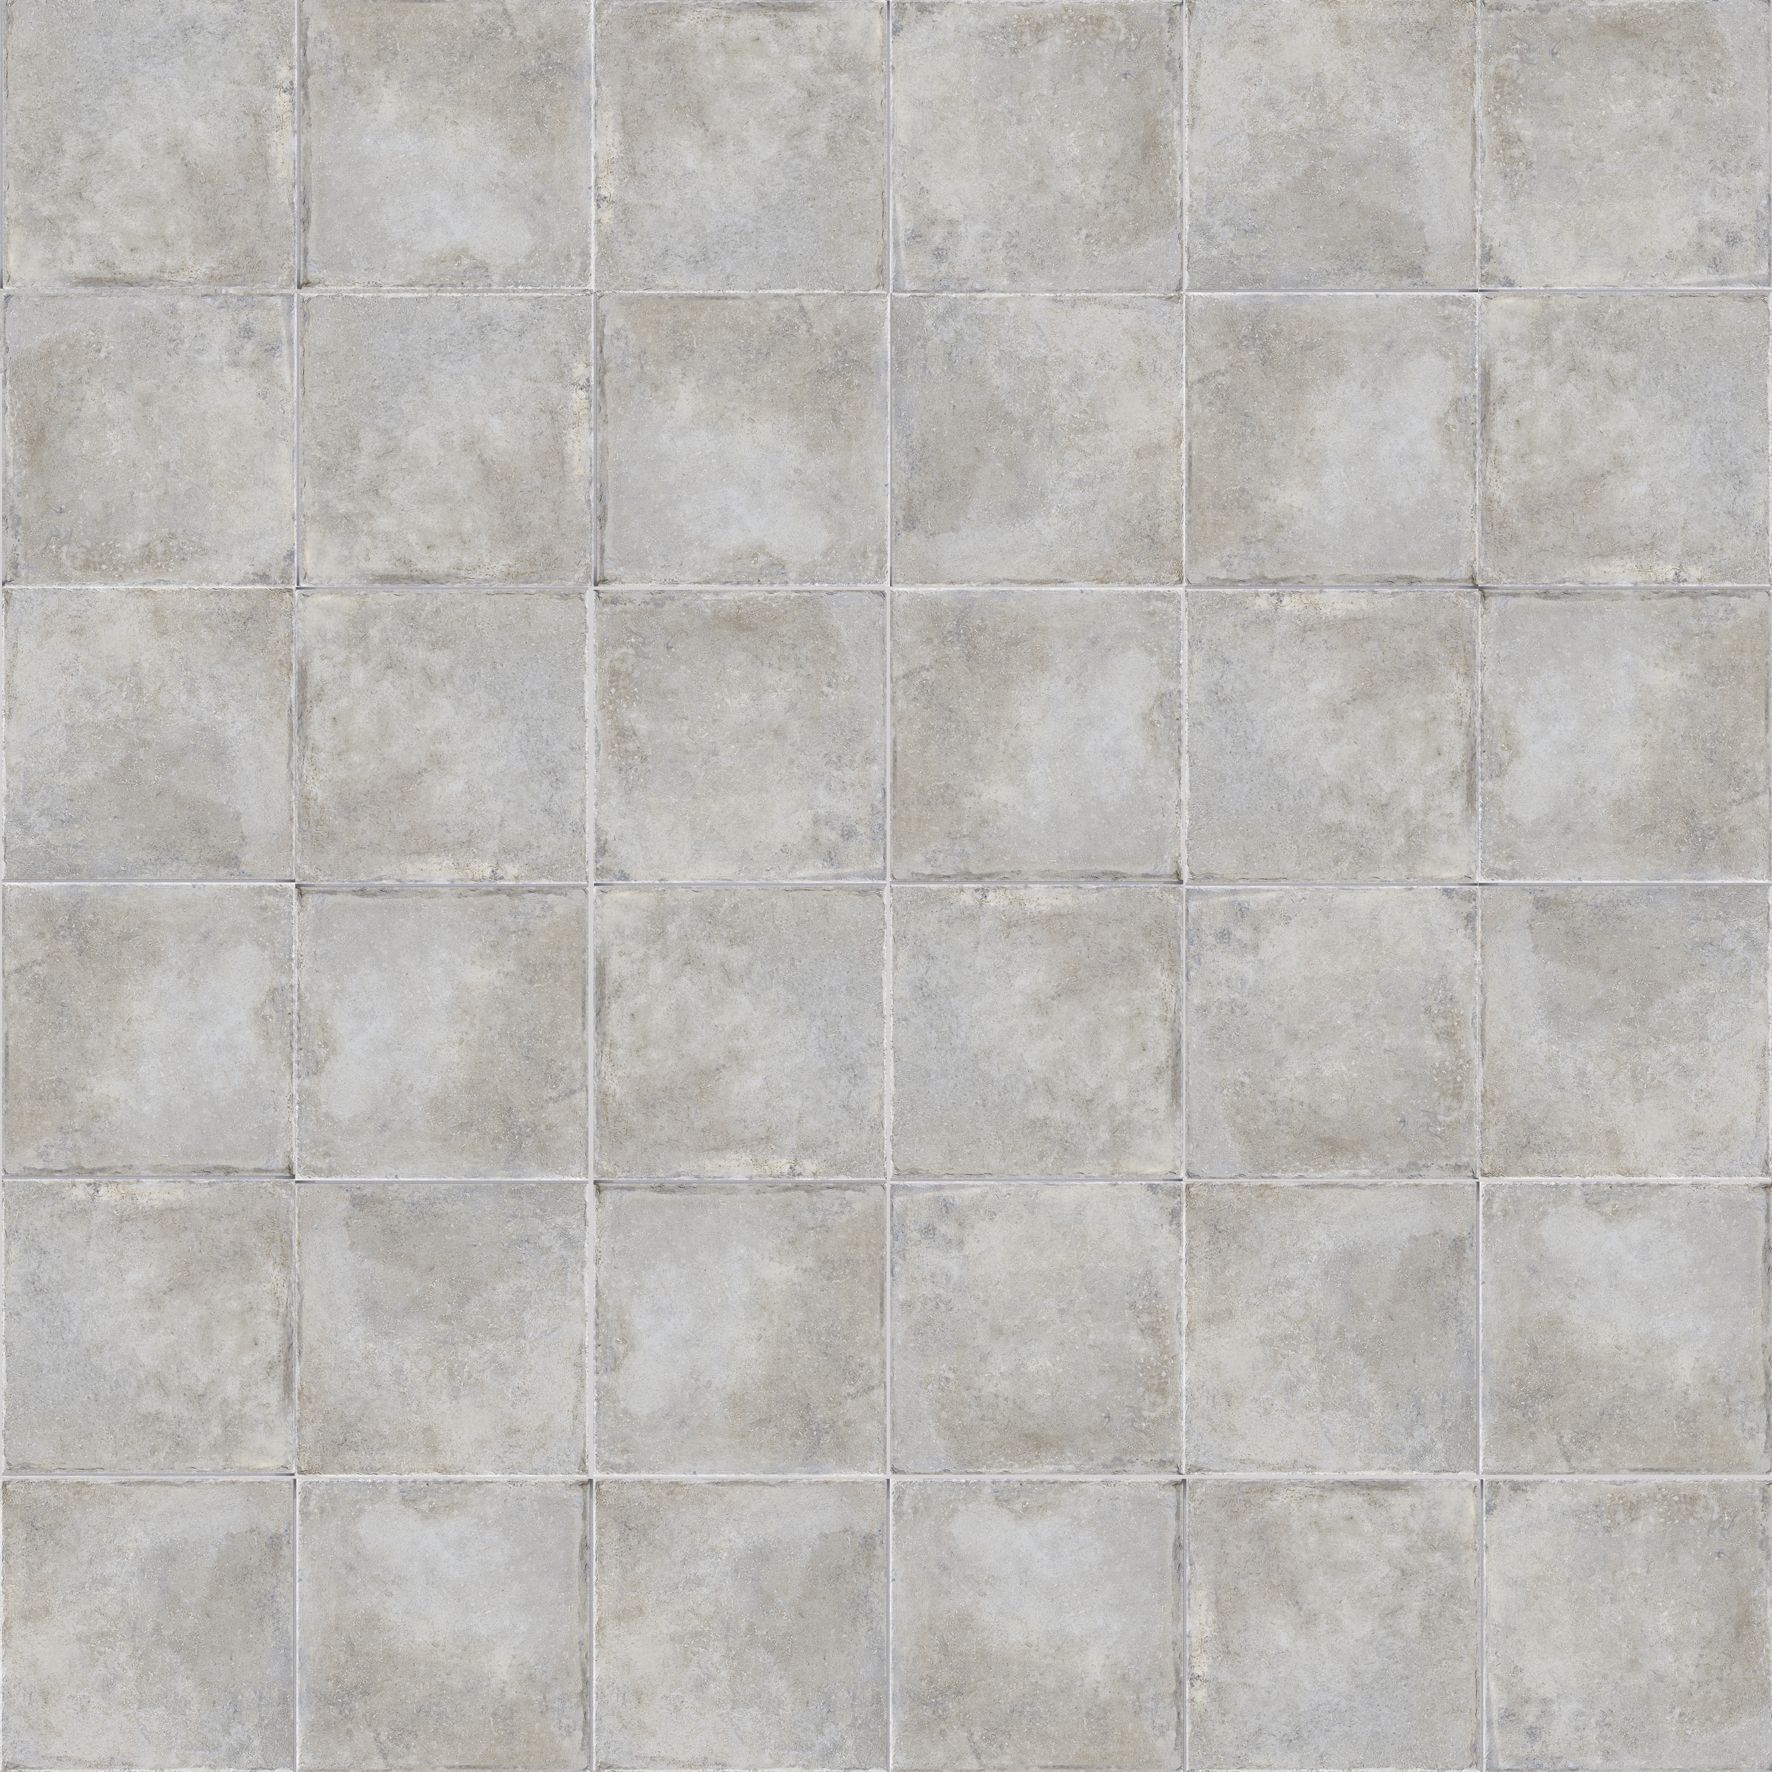 Mosa¯que carrelage imitation pierre 30x30 Pergamo collection Esedra